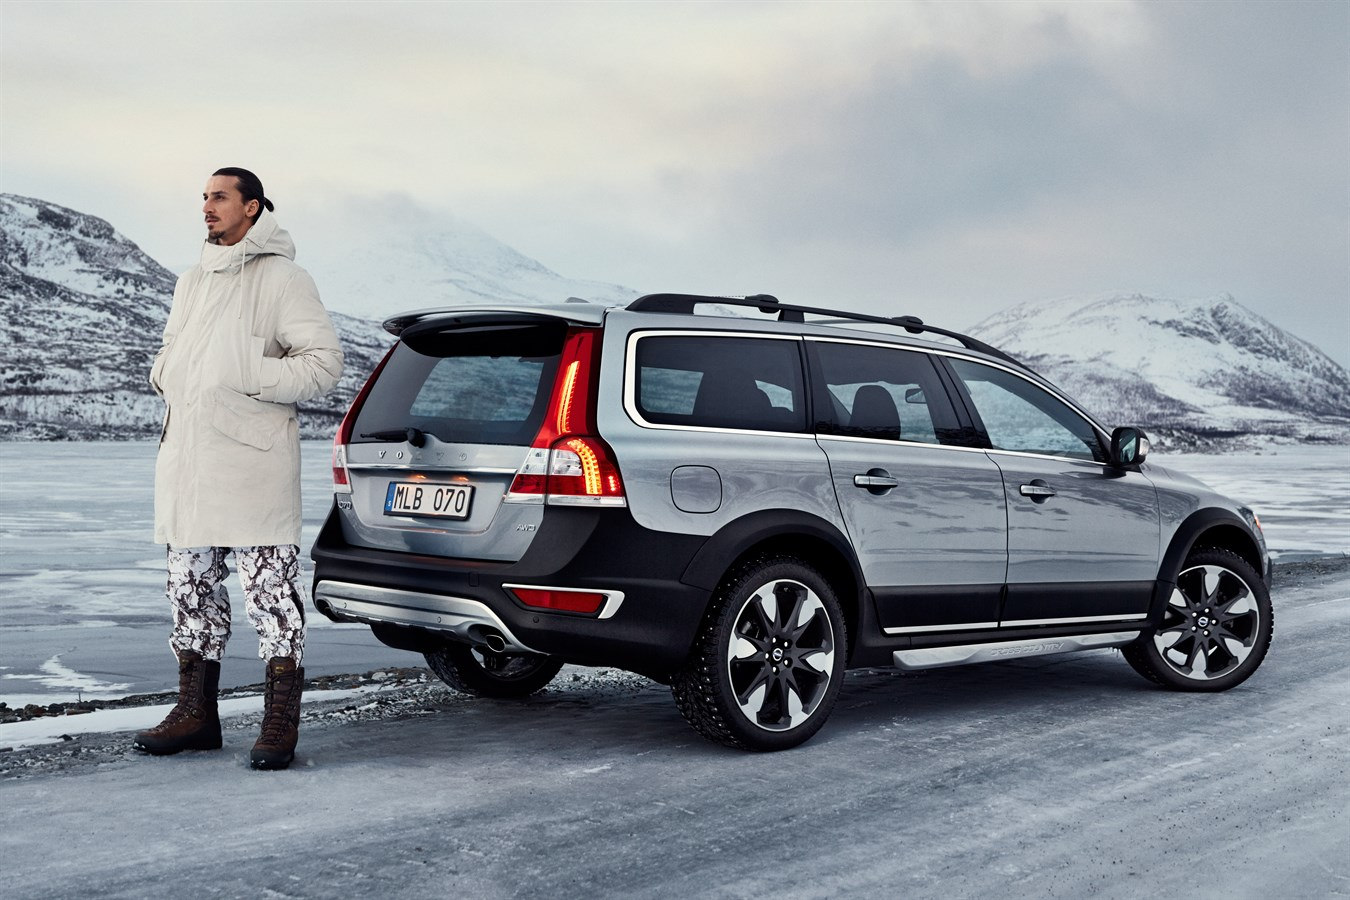 Volvo Xc70 Model Year 2016 Volvo Car Group Global